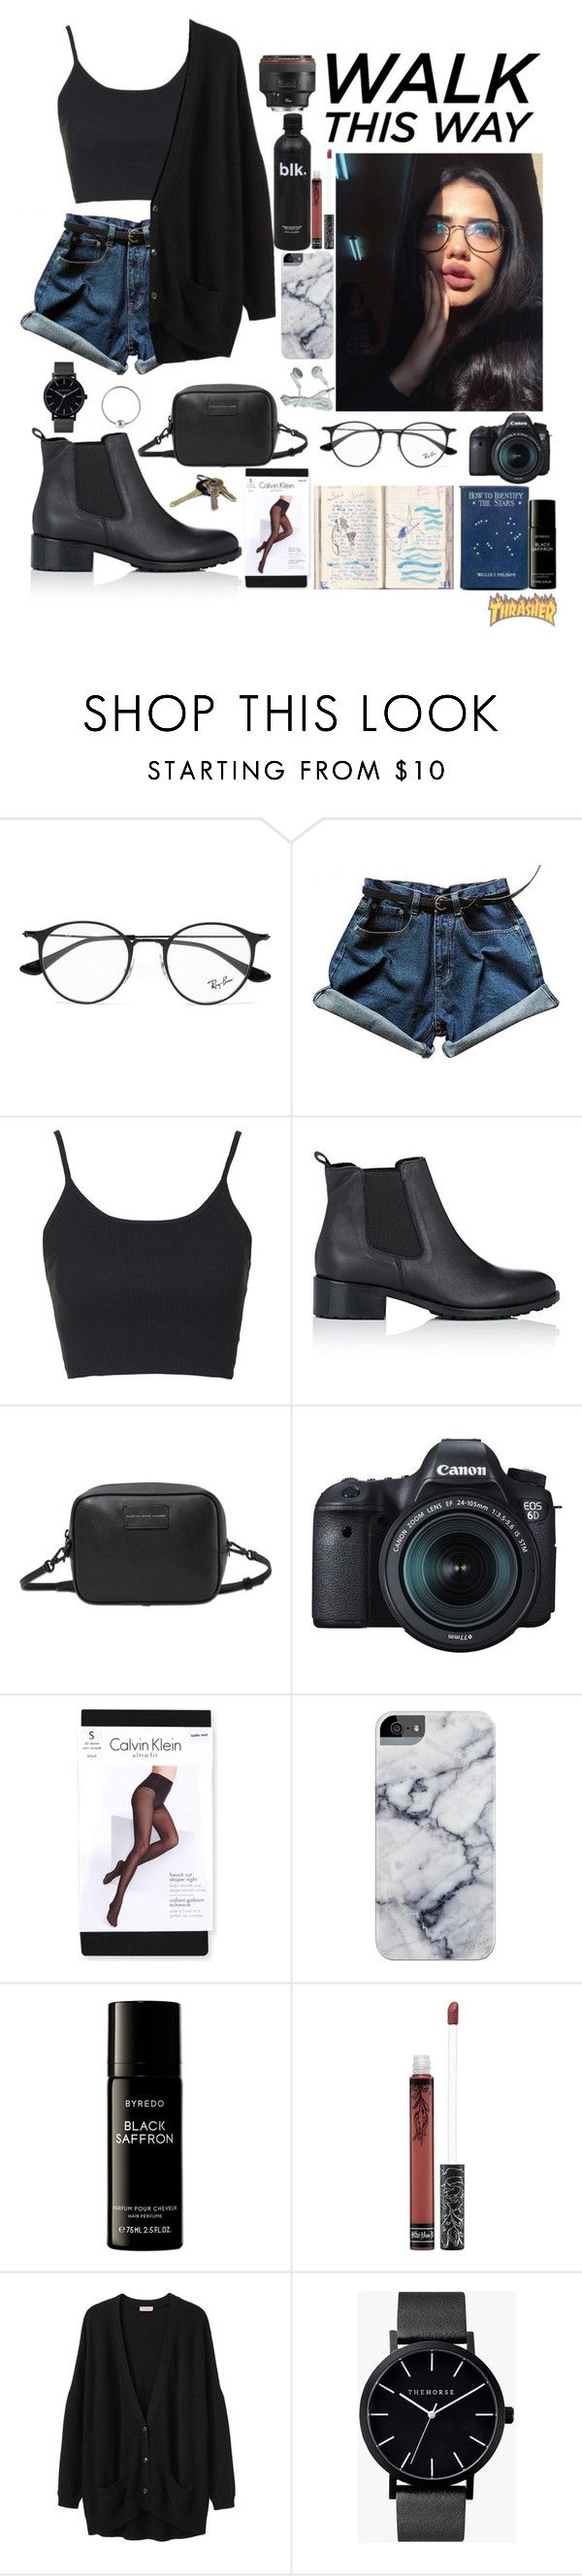 """""""WALK This Way"""" by futureisnow ❤ liked on Polyvore featuring Ray-Ban, Topshop, Barneys New York, Marc by Marc Jacobs, Eos, Calvin Klein, Avon, Byredo, Kat Von D and Organic by John Patrick"""